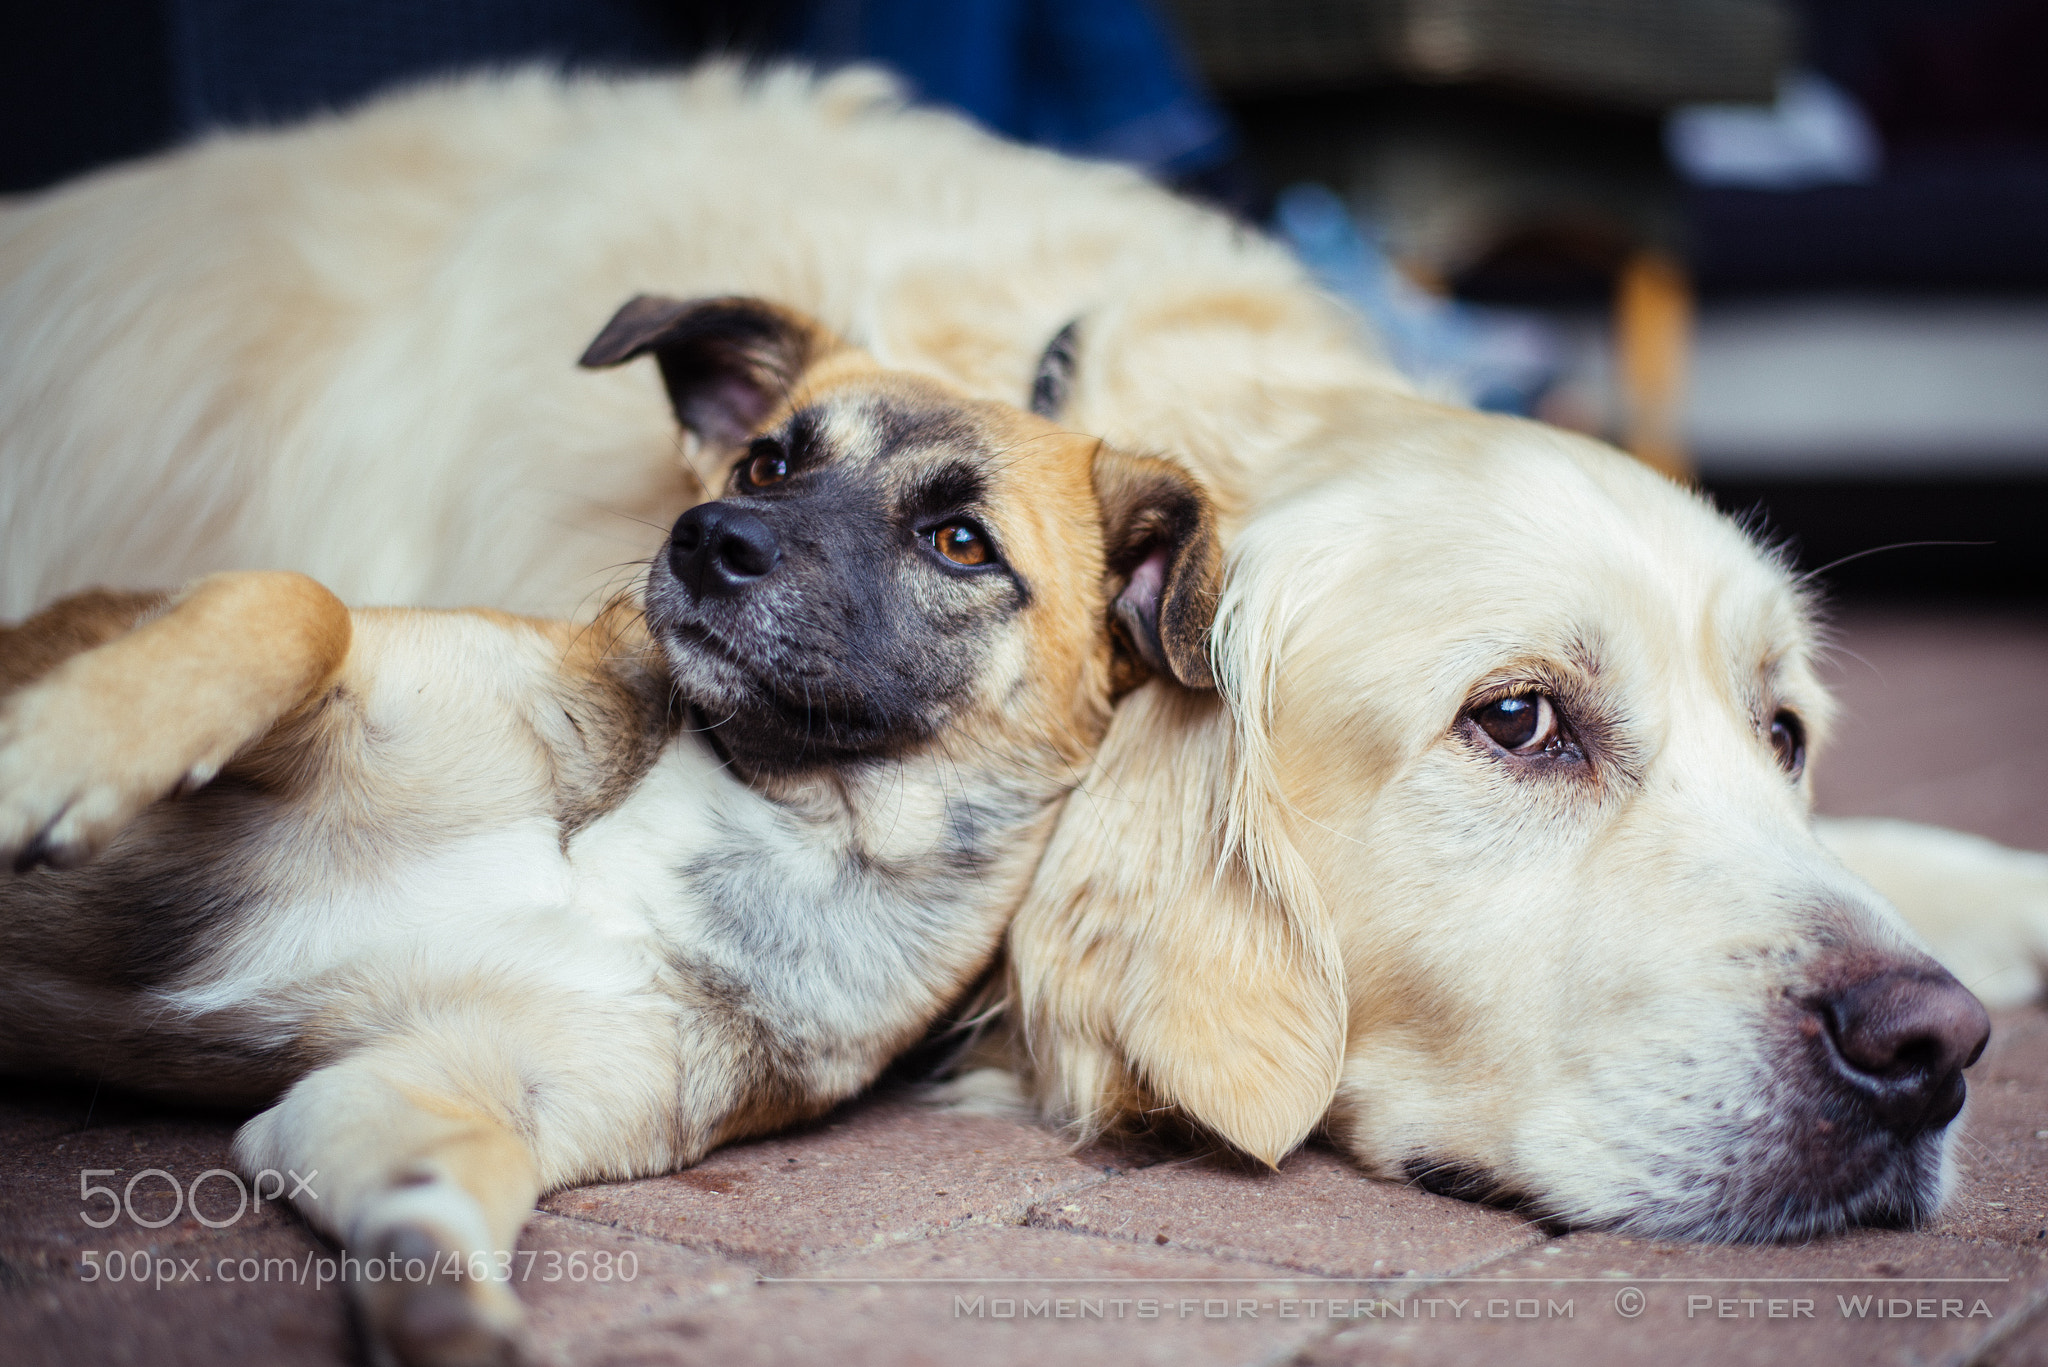 Photograph Cookie & Louis by Peter Widera on 500px